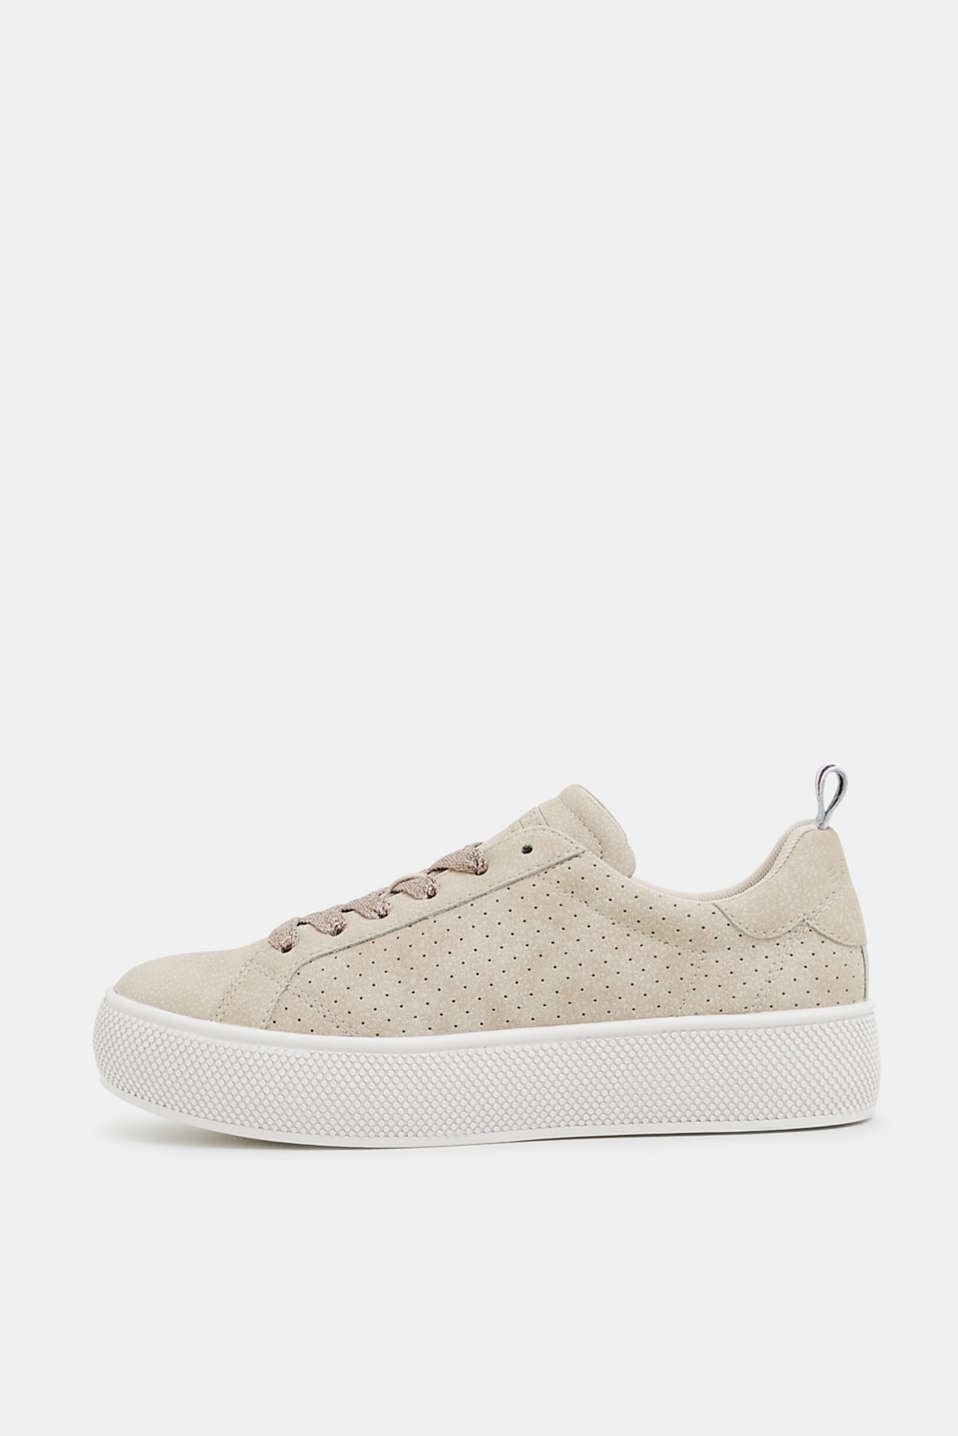 Esprit - Plateau-Sneaker in Nubuk-Optik